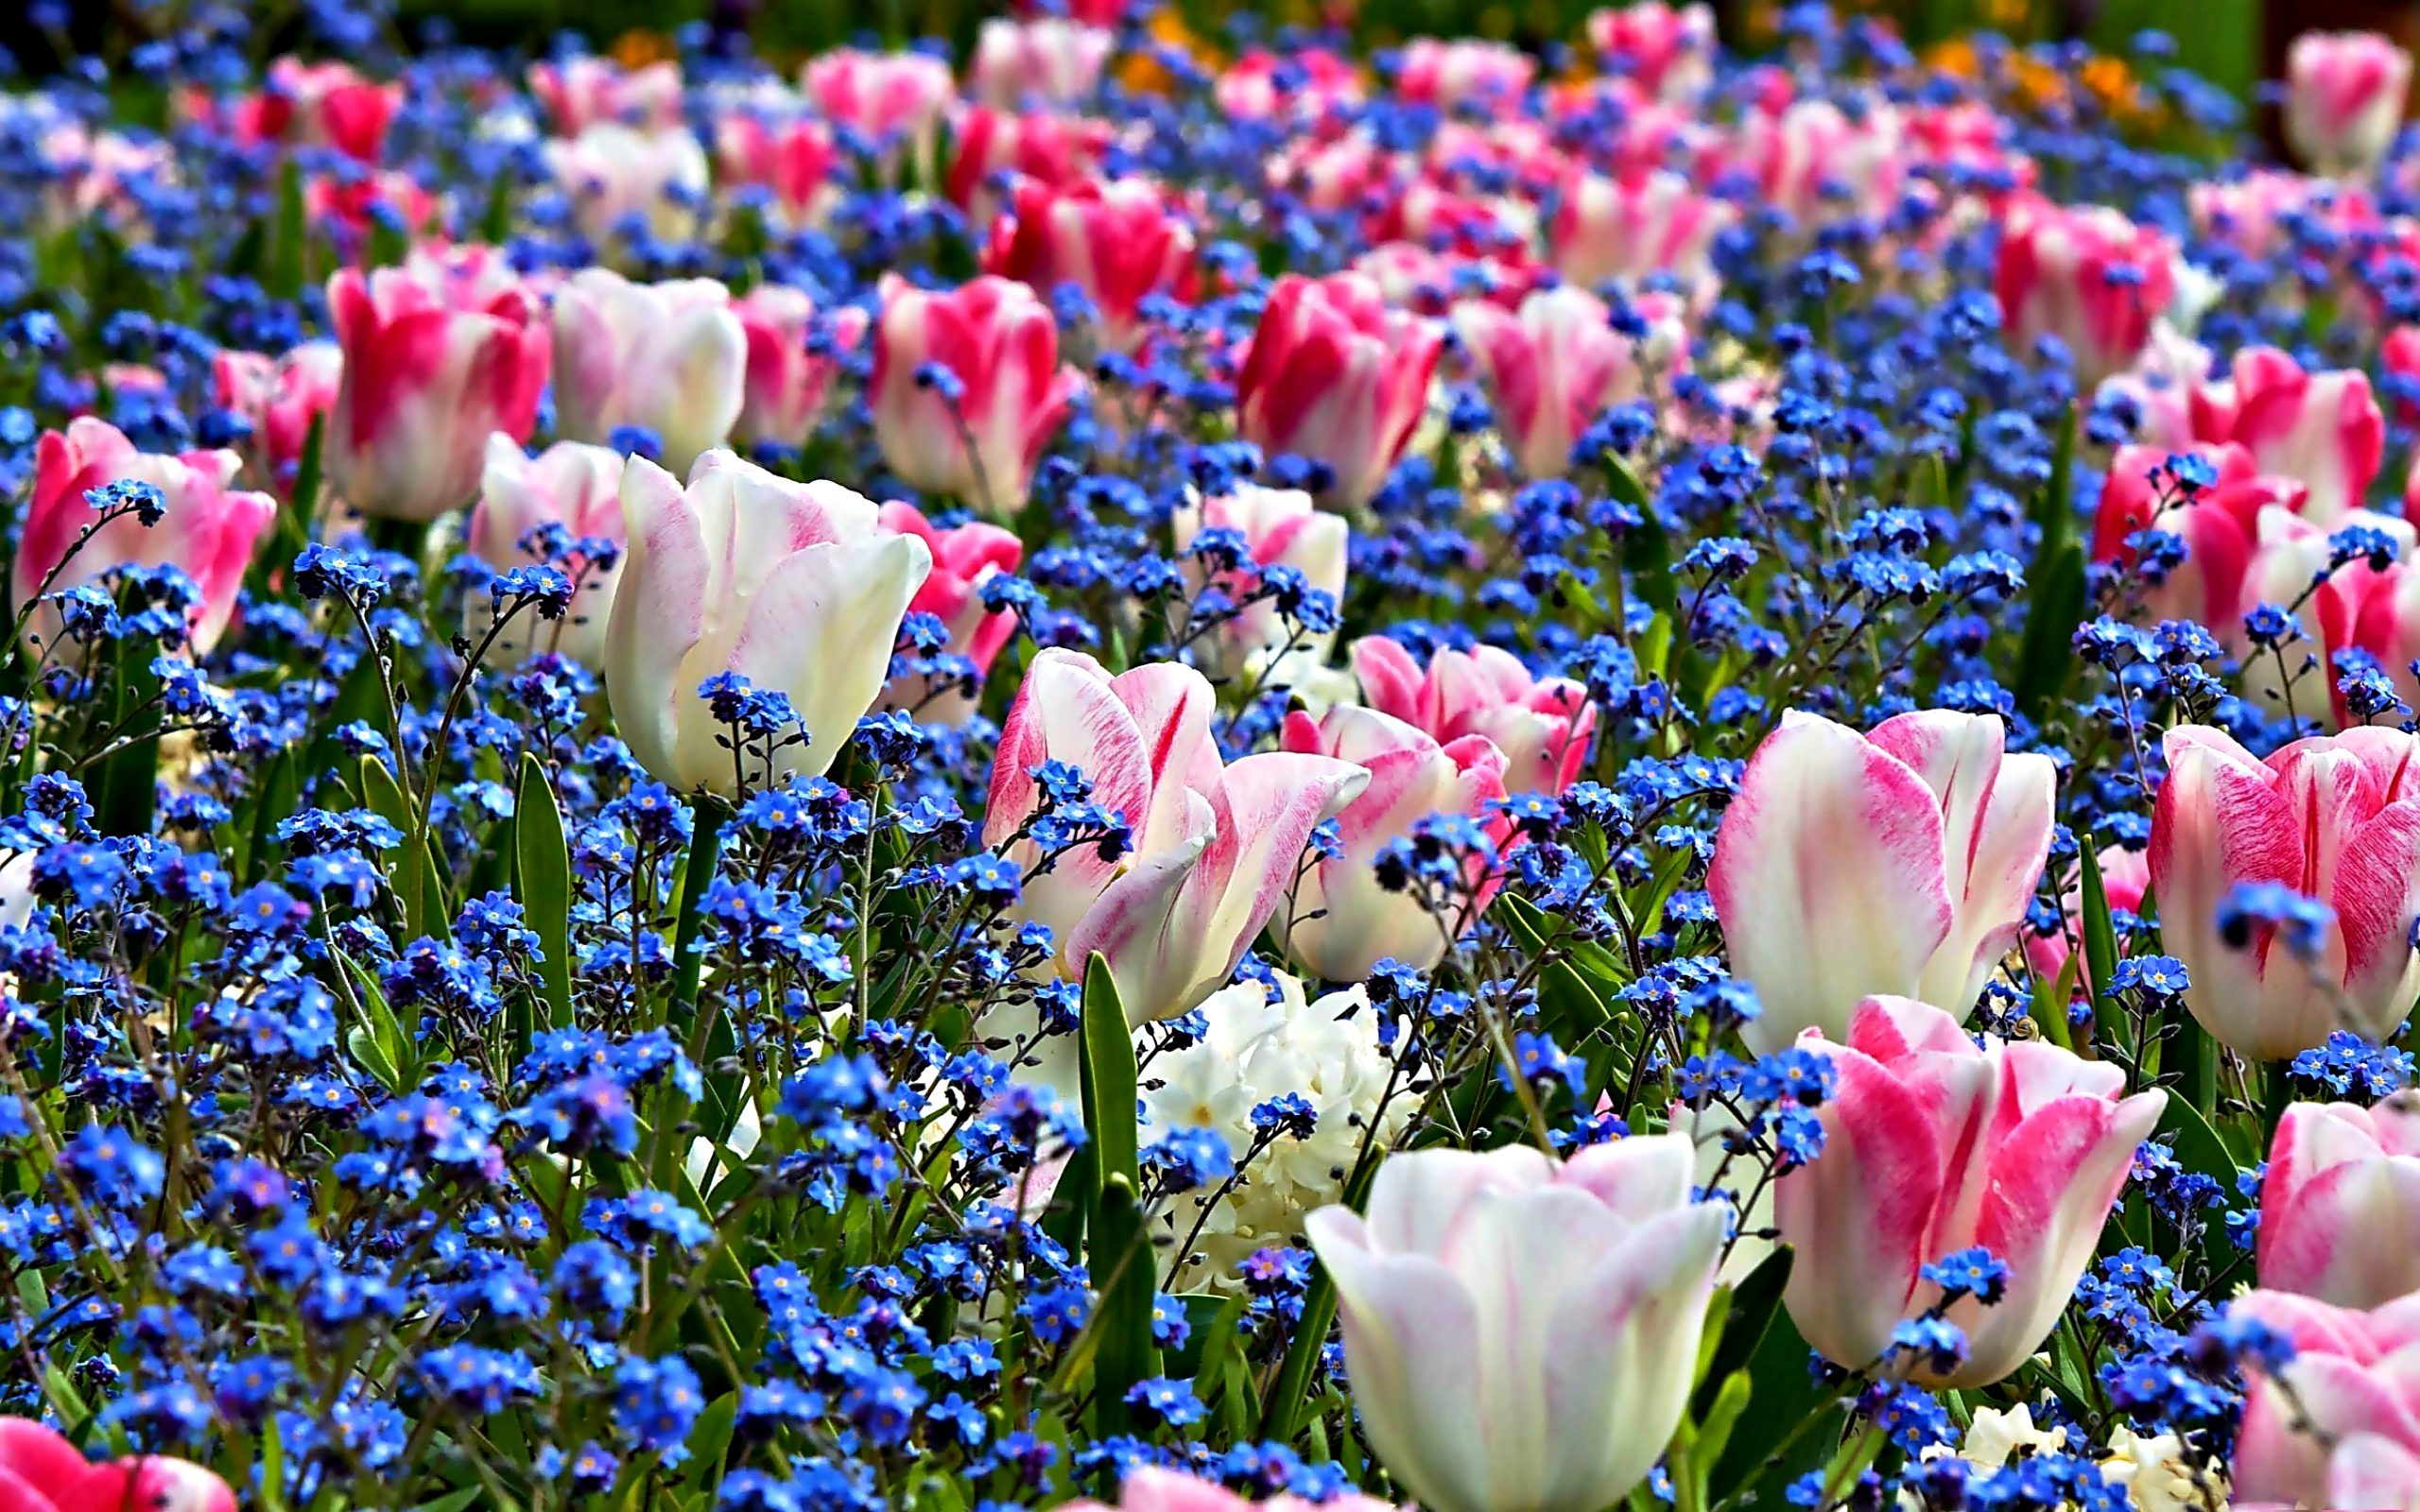 spring flowers wallpaper images   Wallpapers 2560x1600